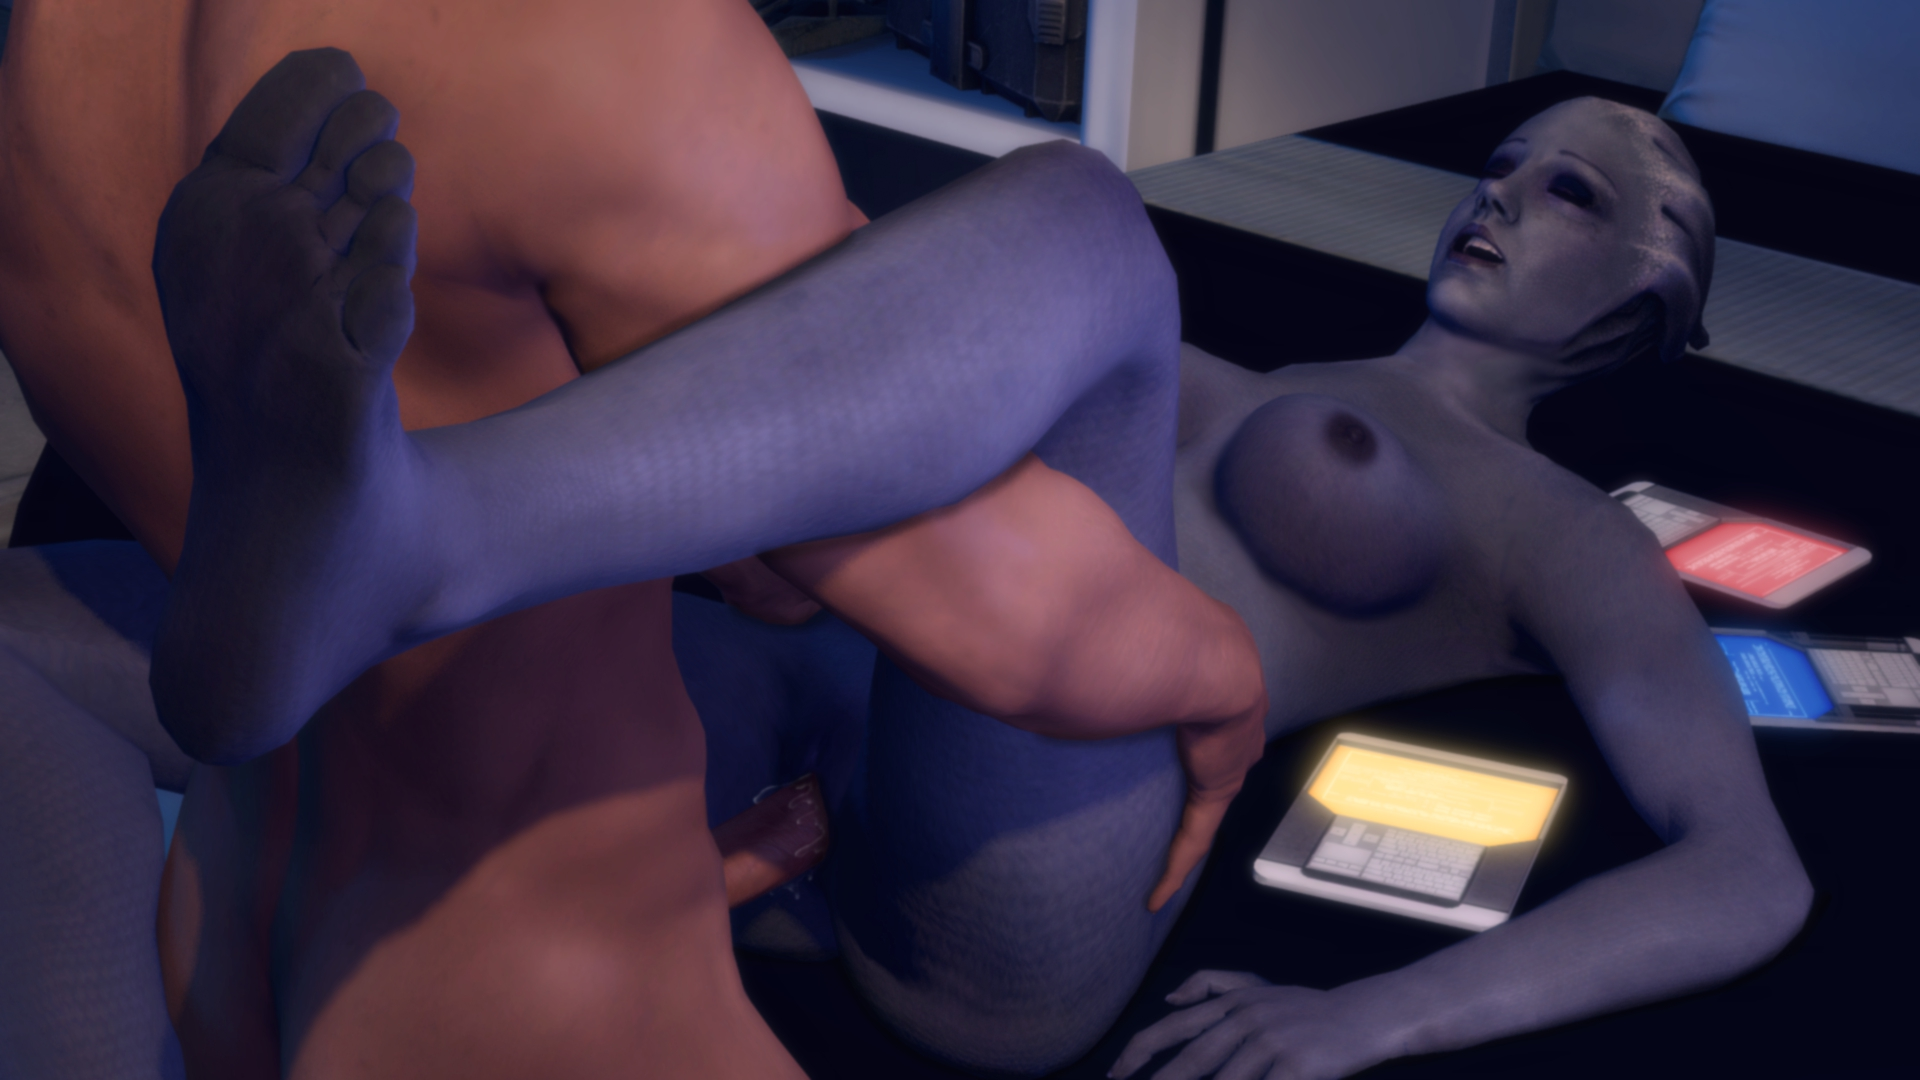 Mass effect liara porn picture video hentai thumbs